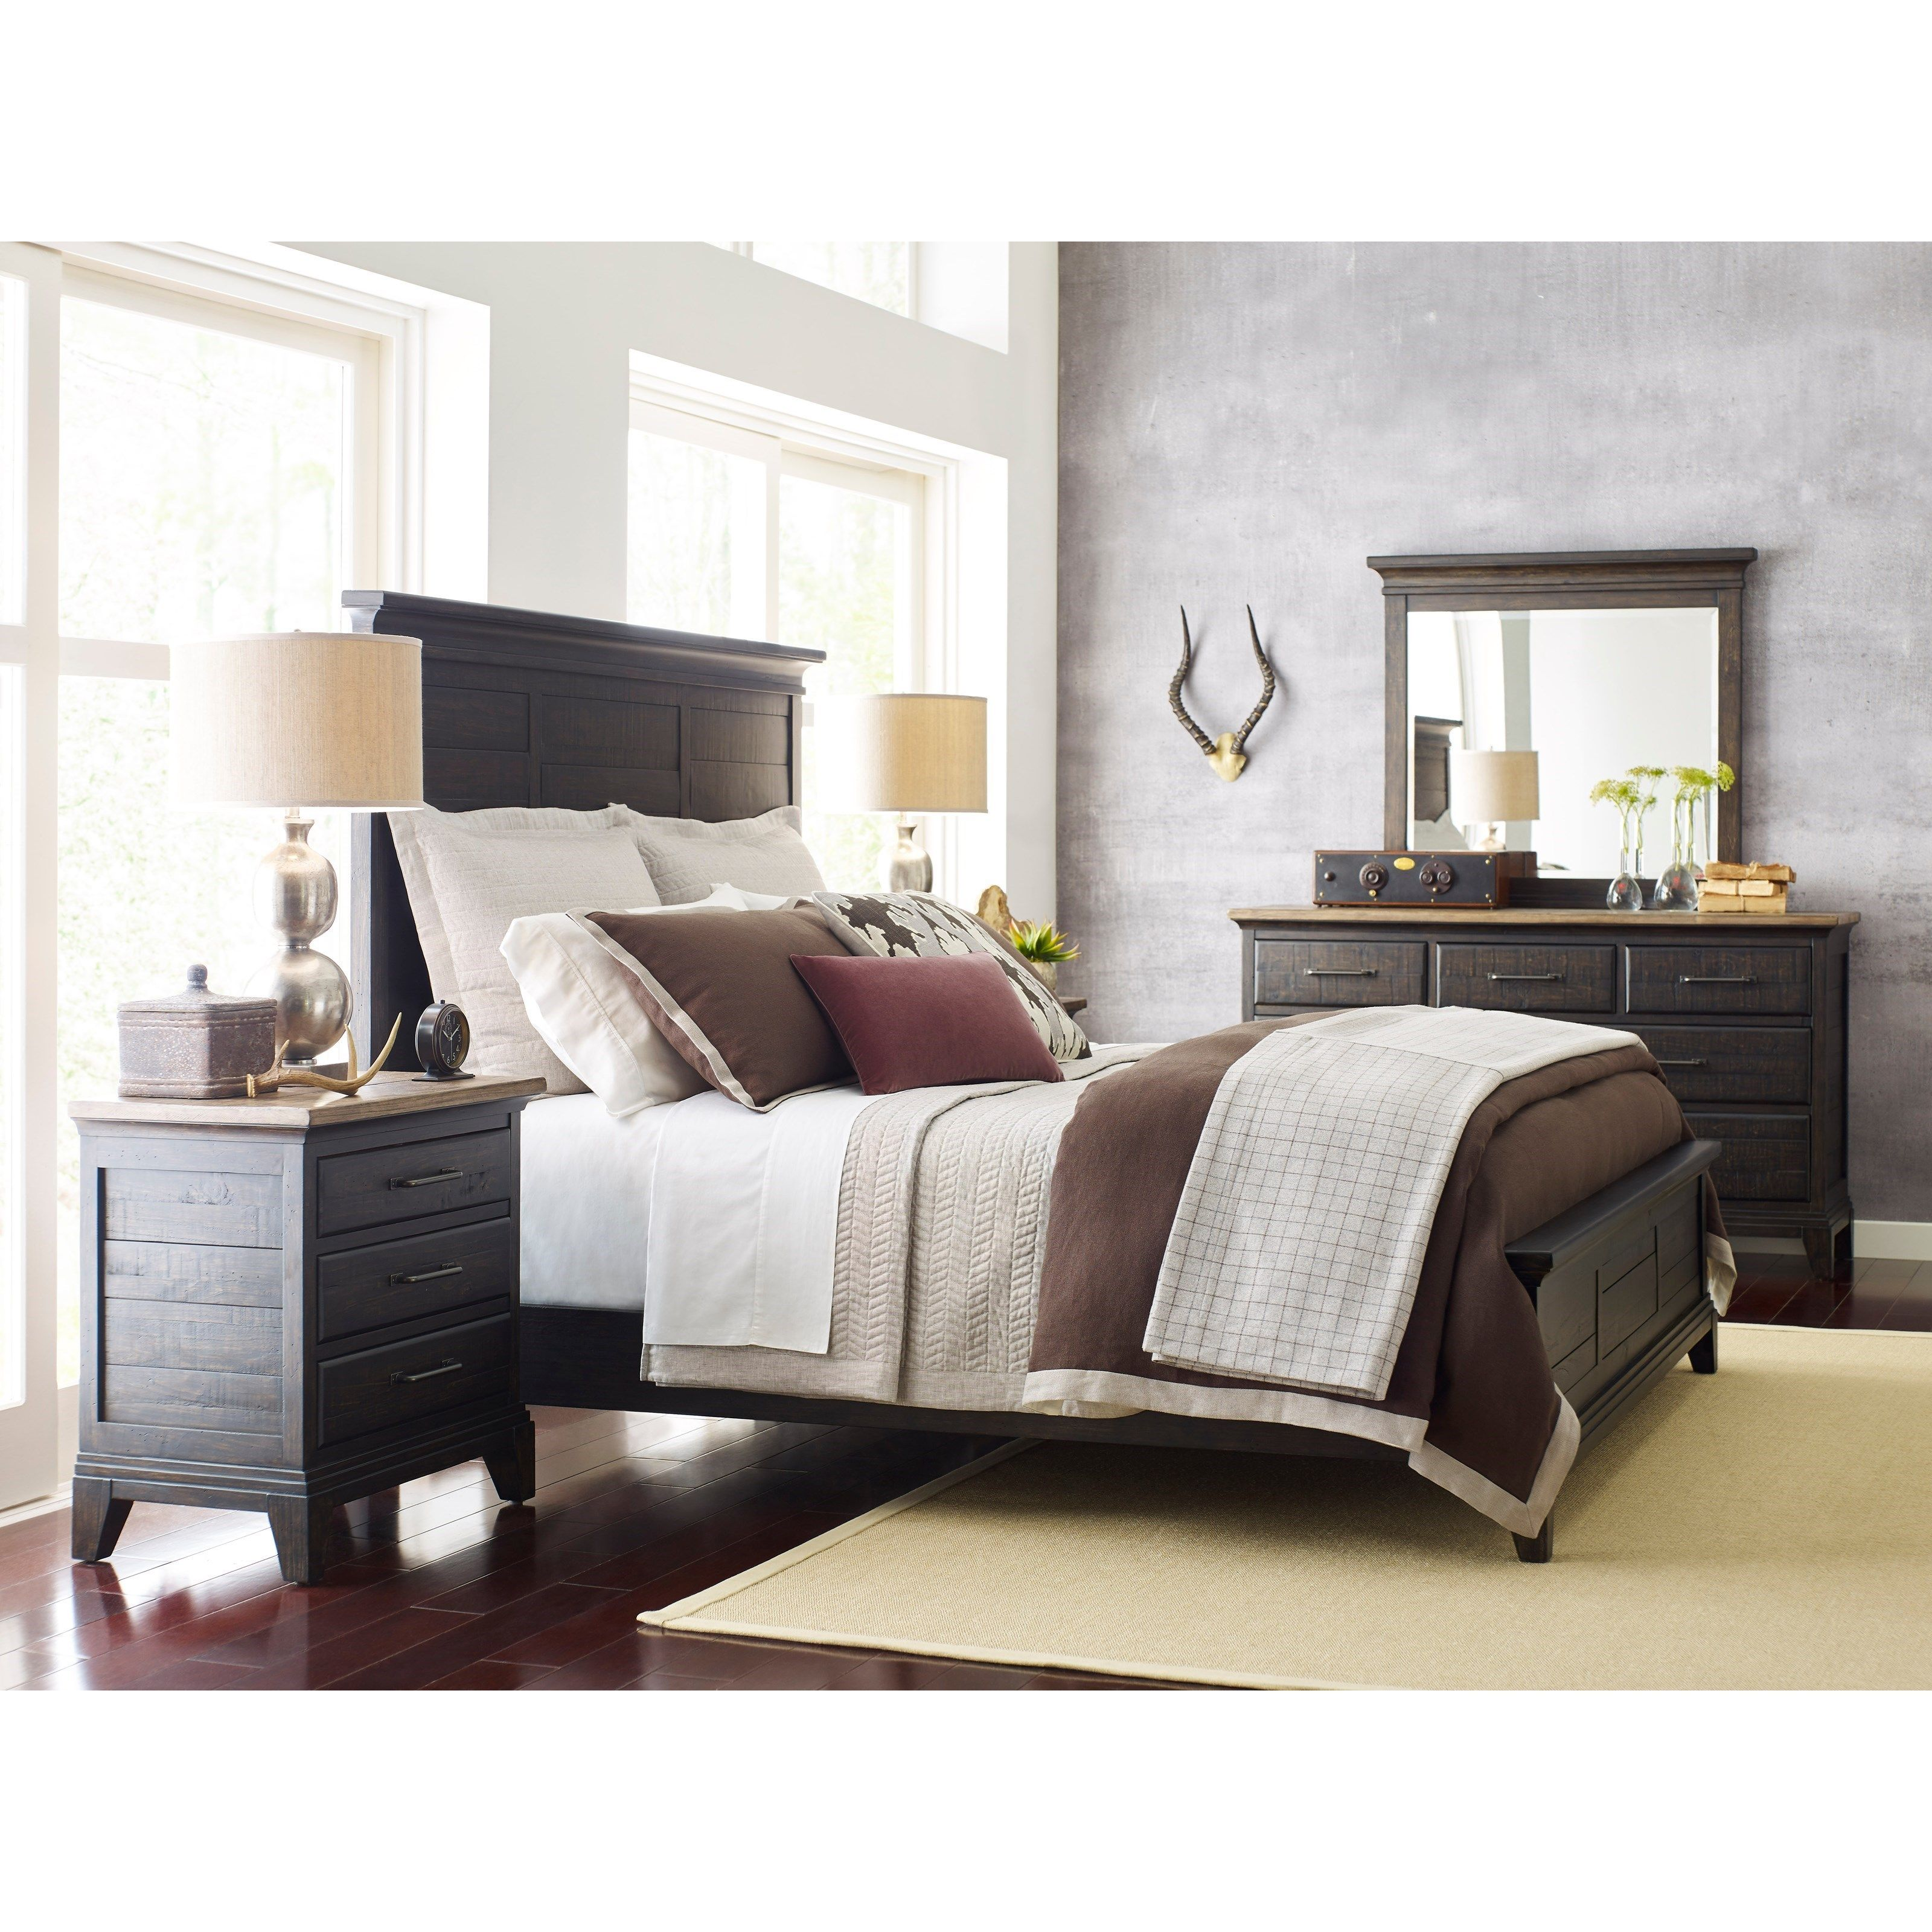 Plank Road King Bedroom Group by Kincaid Furniture